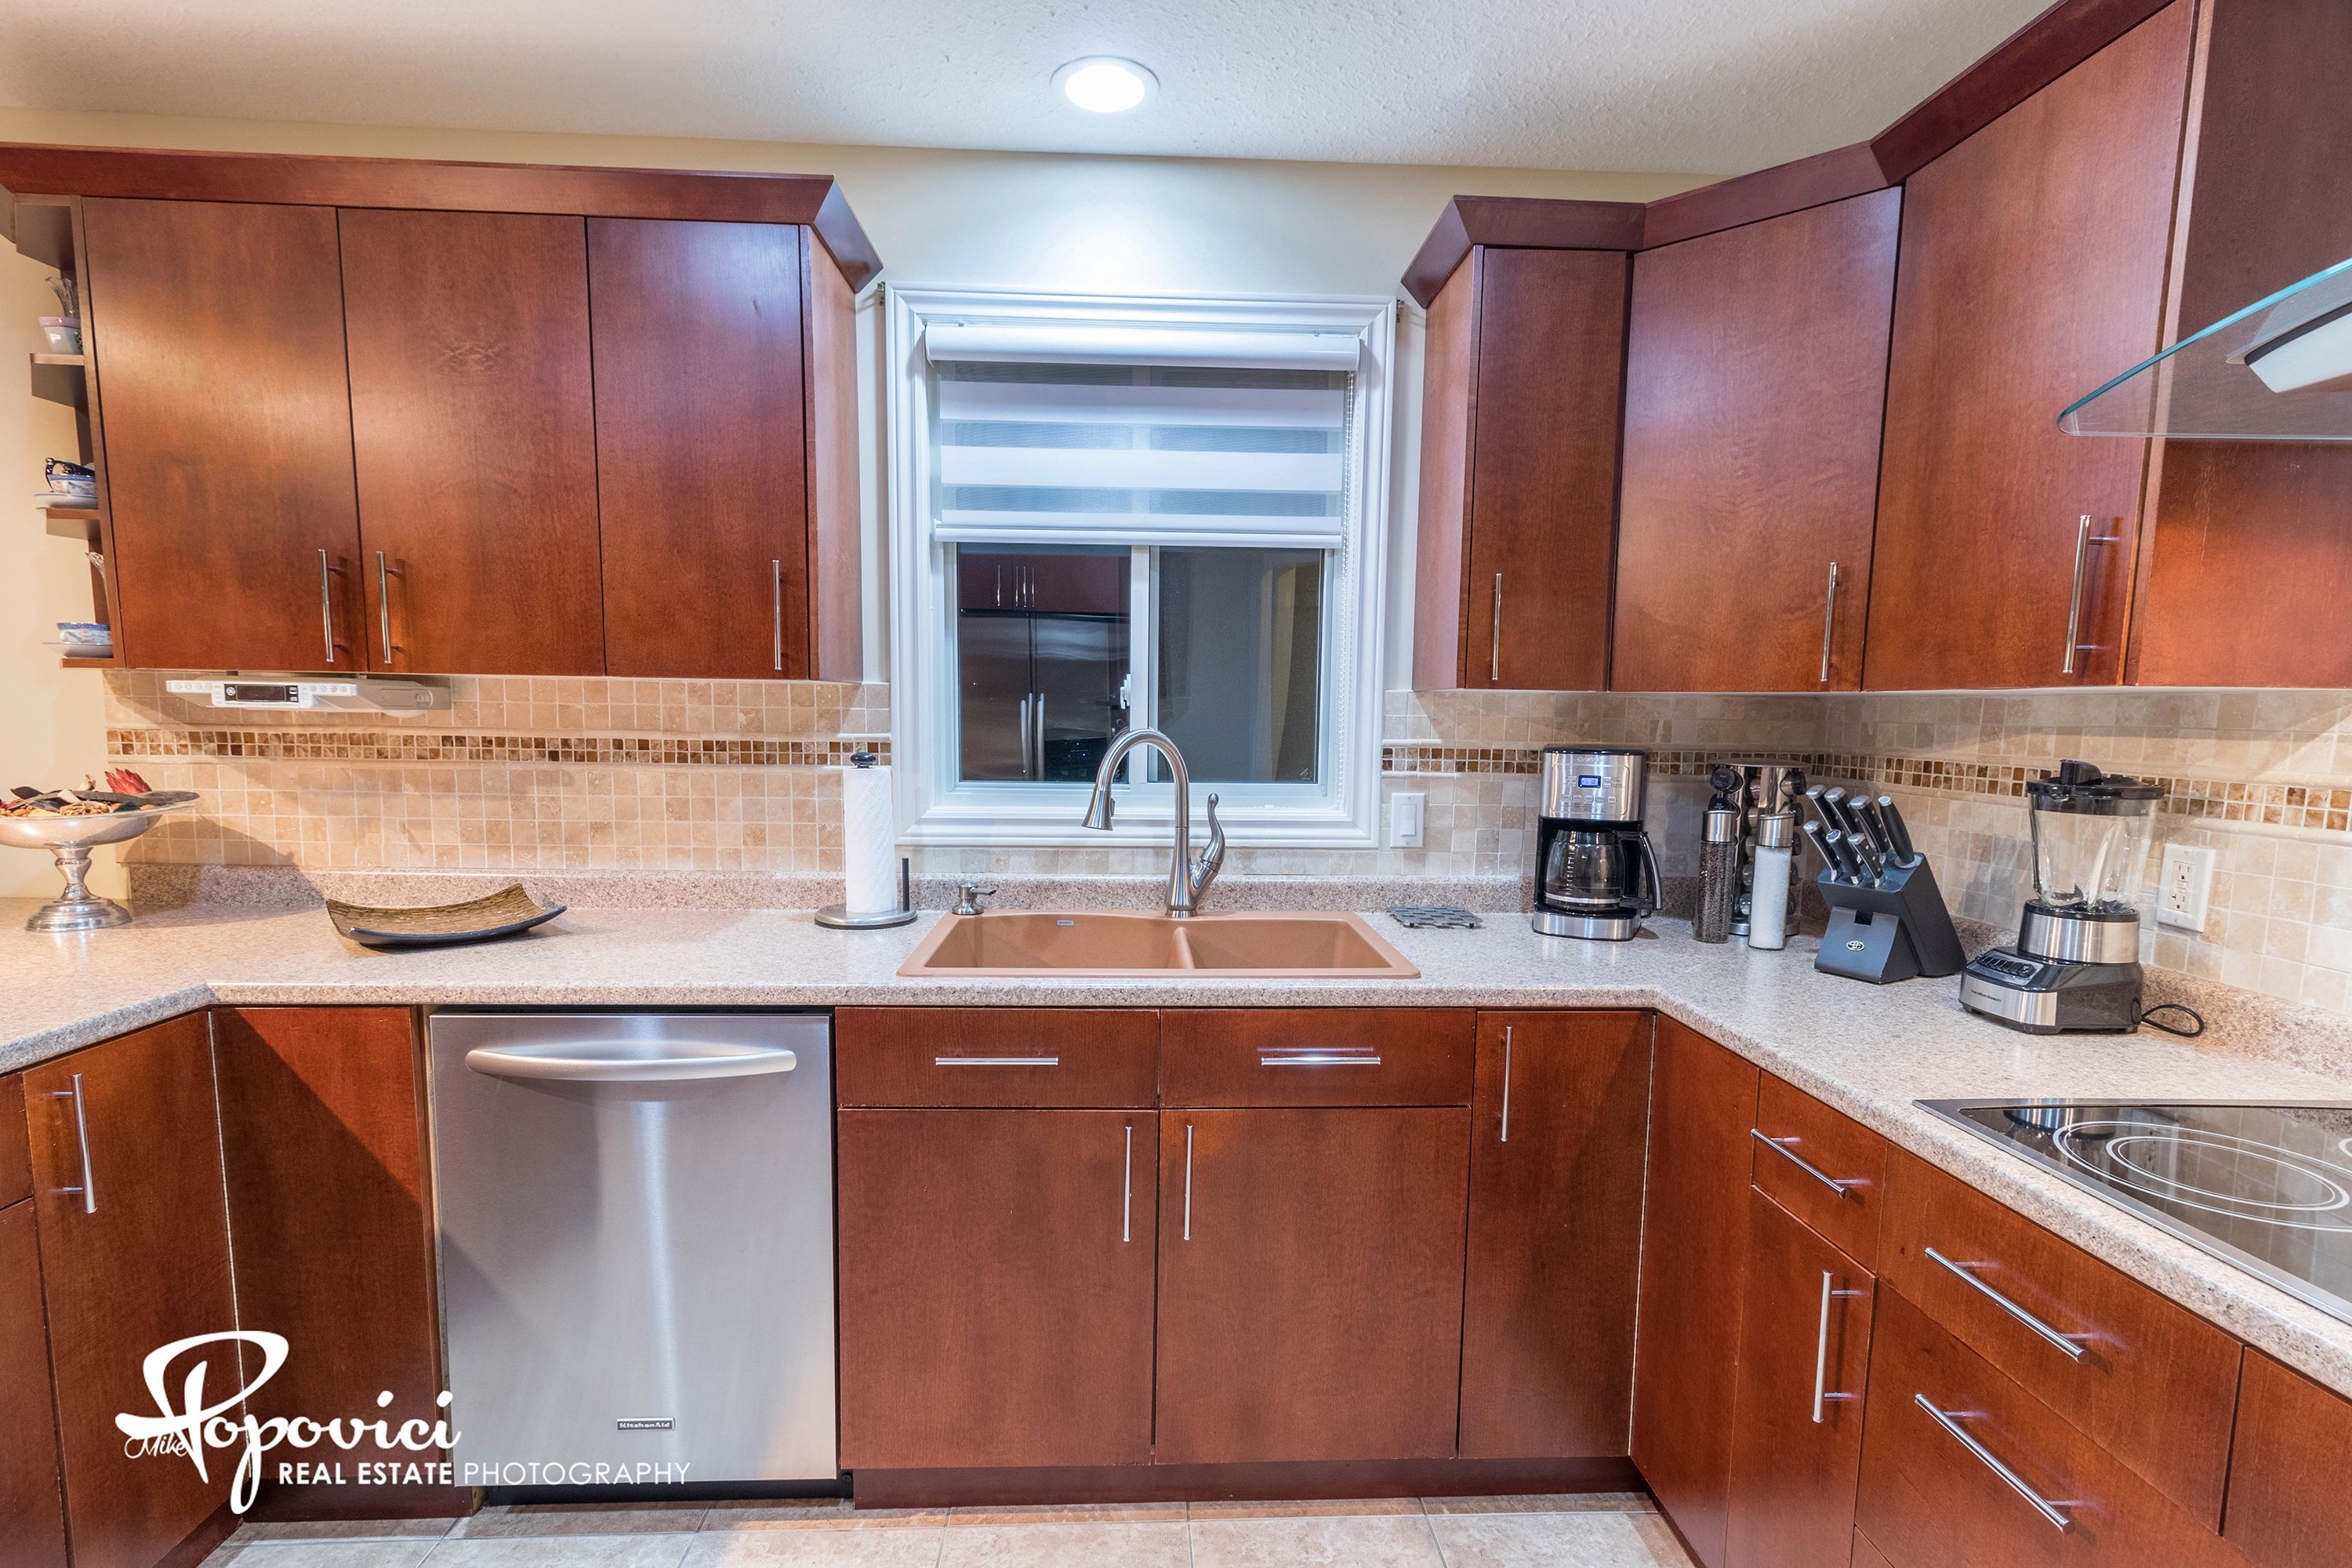 kitchen-real-estate-photography-london-ontario_1 | Mike Popovici ...